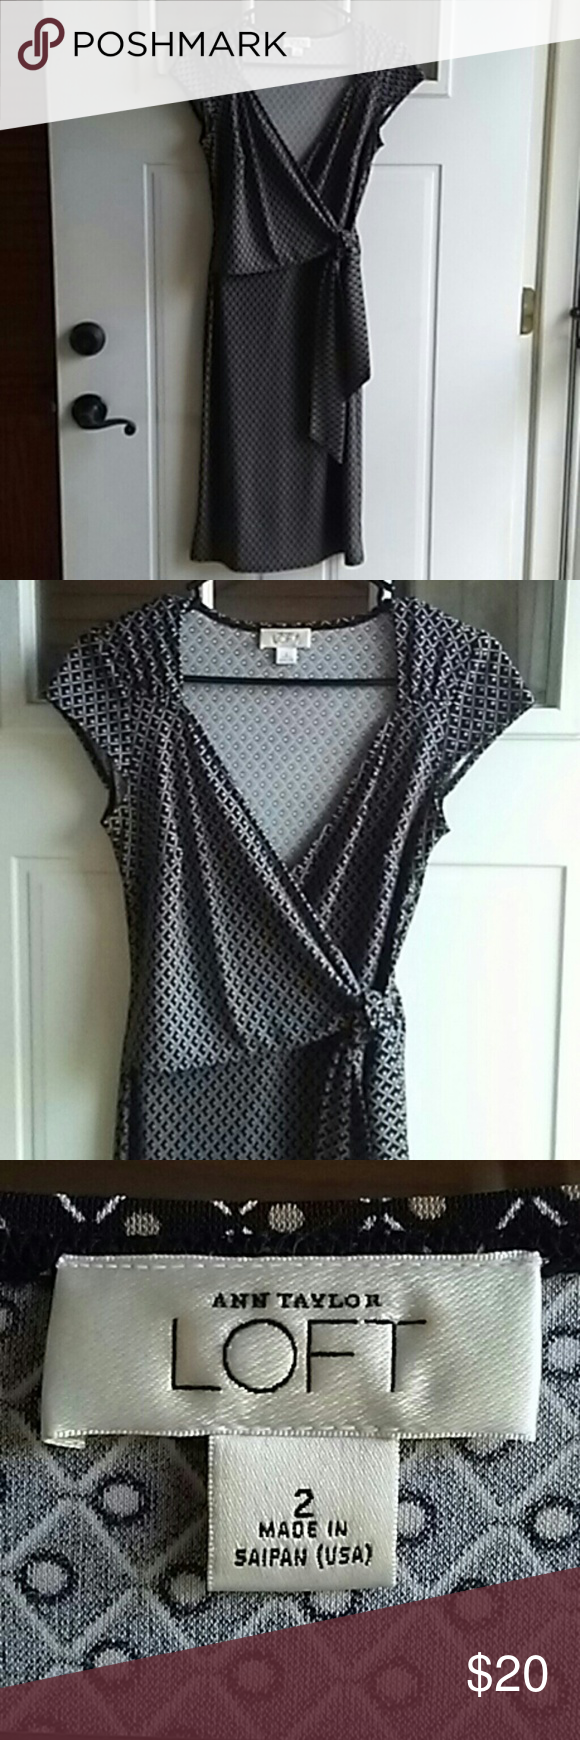 ANN TAYLOR LOFT DRESS SIZE 2 This is an easy to wear dress with interesting detailing on the top. It is made of wrinkle resistant fabric! LOFT Dresses